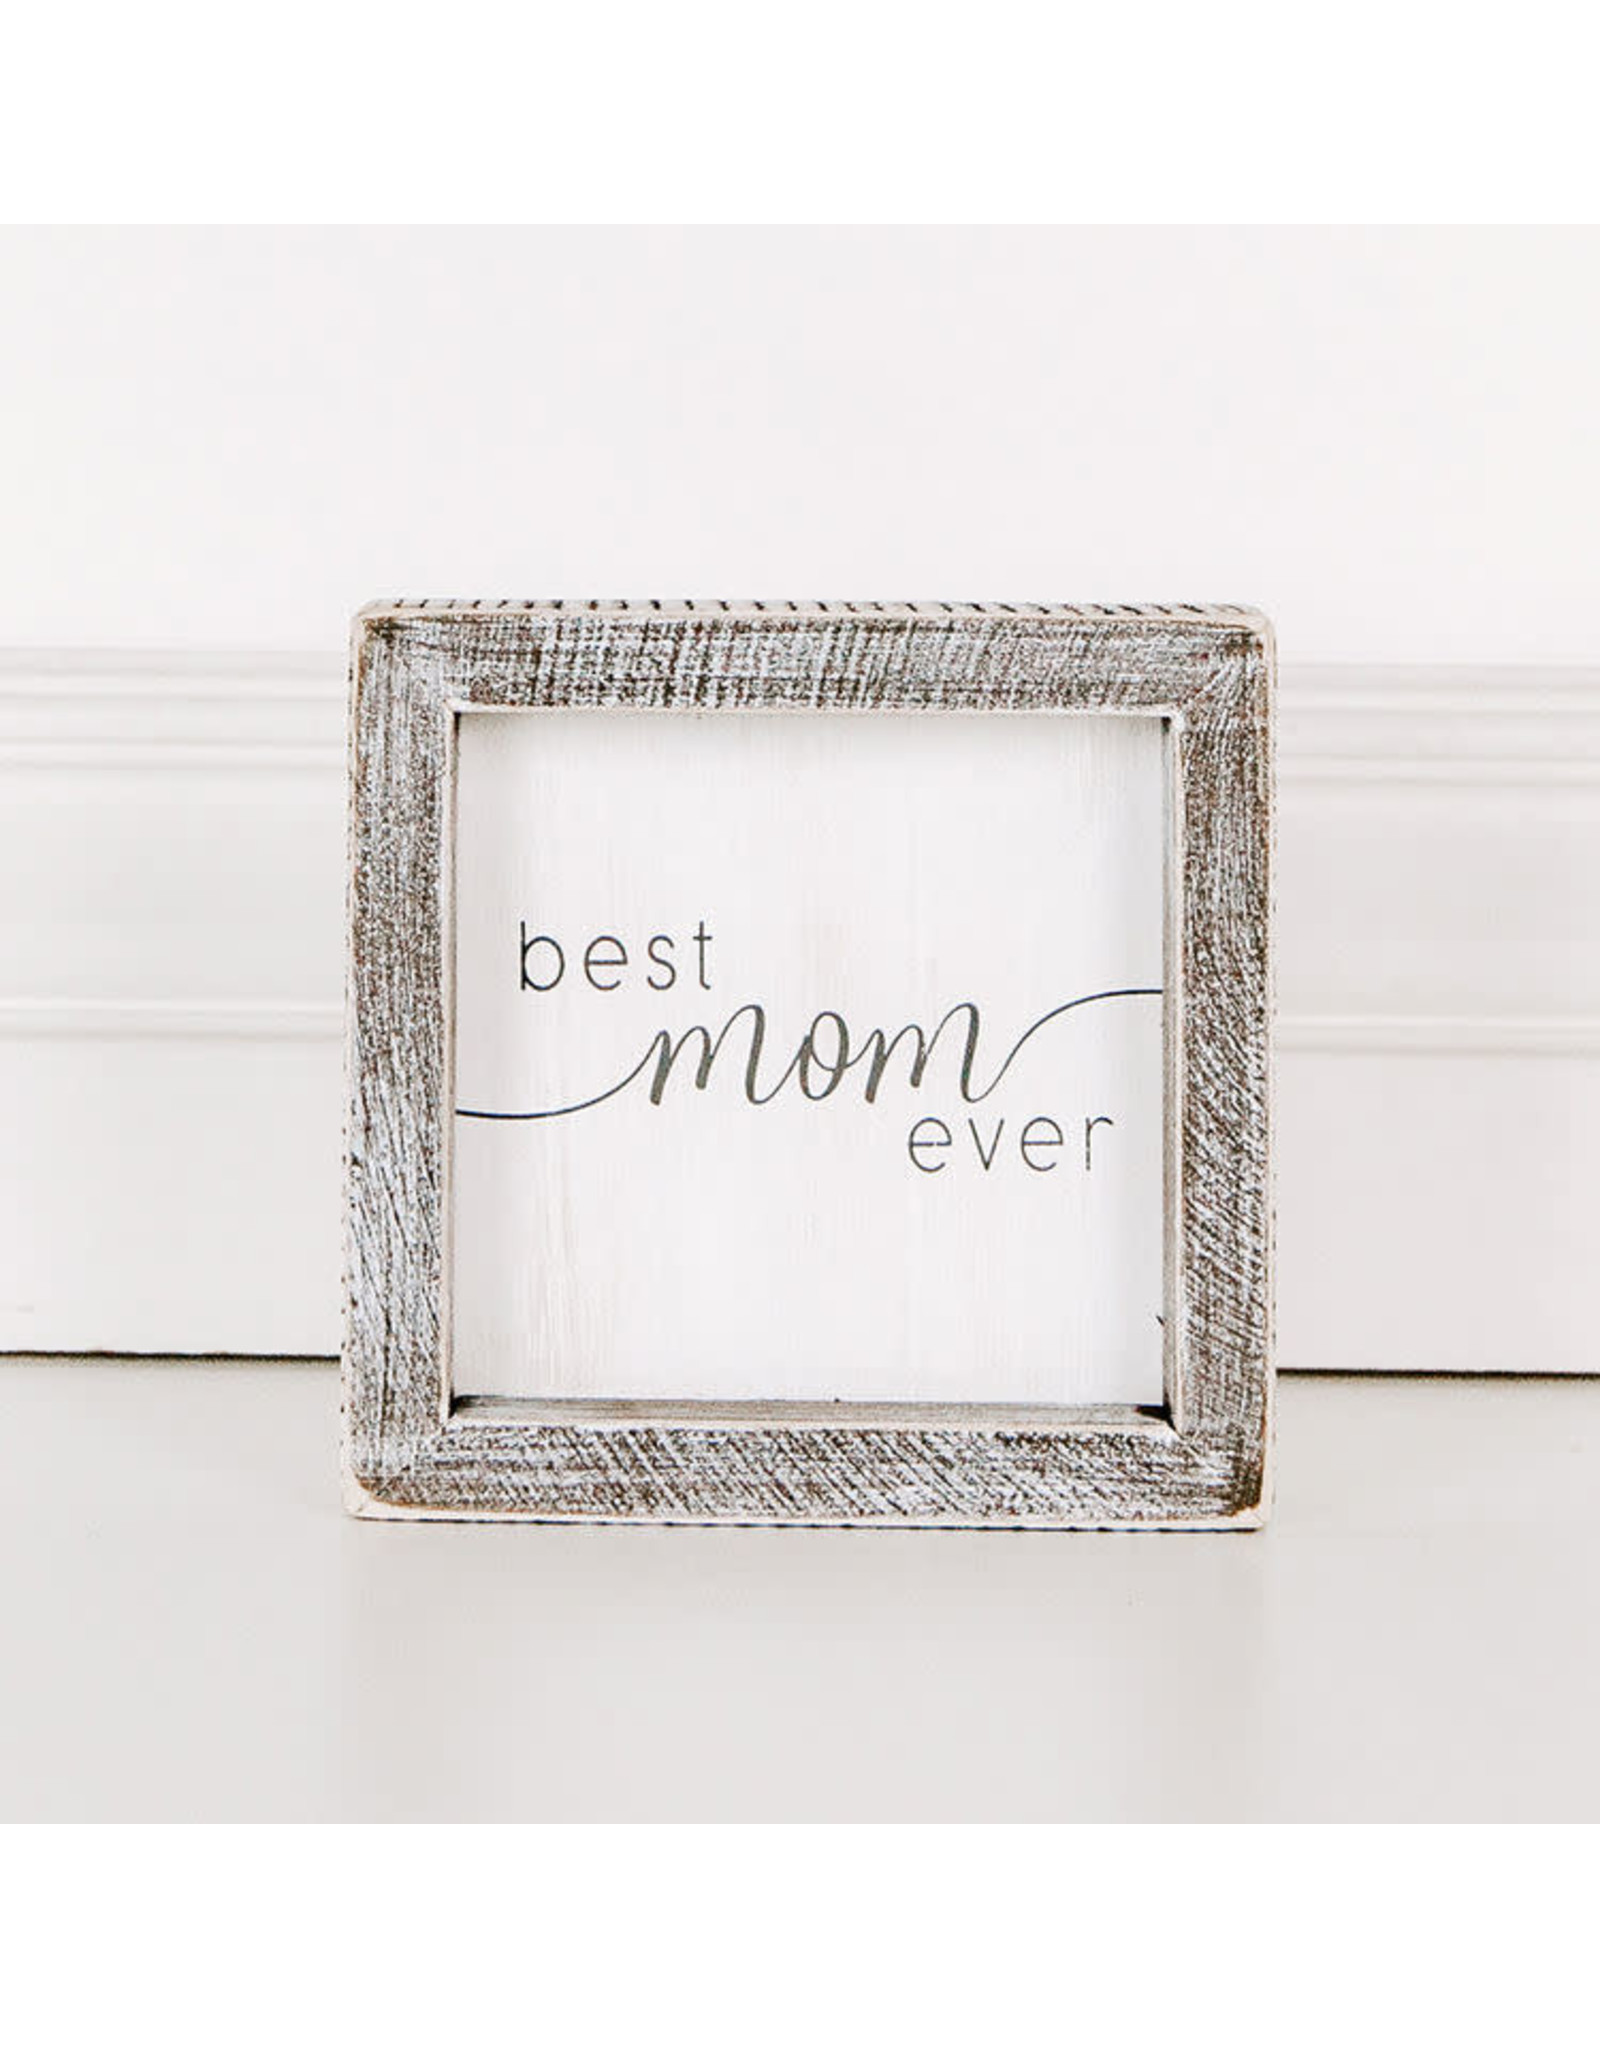 Adams & Co. Wd Framed Sign 5x5x1.5  (BST MOM EVR) wh/gy